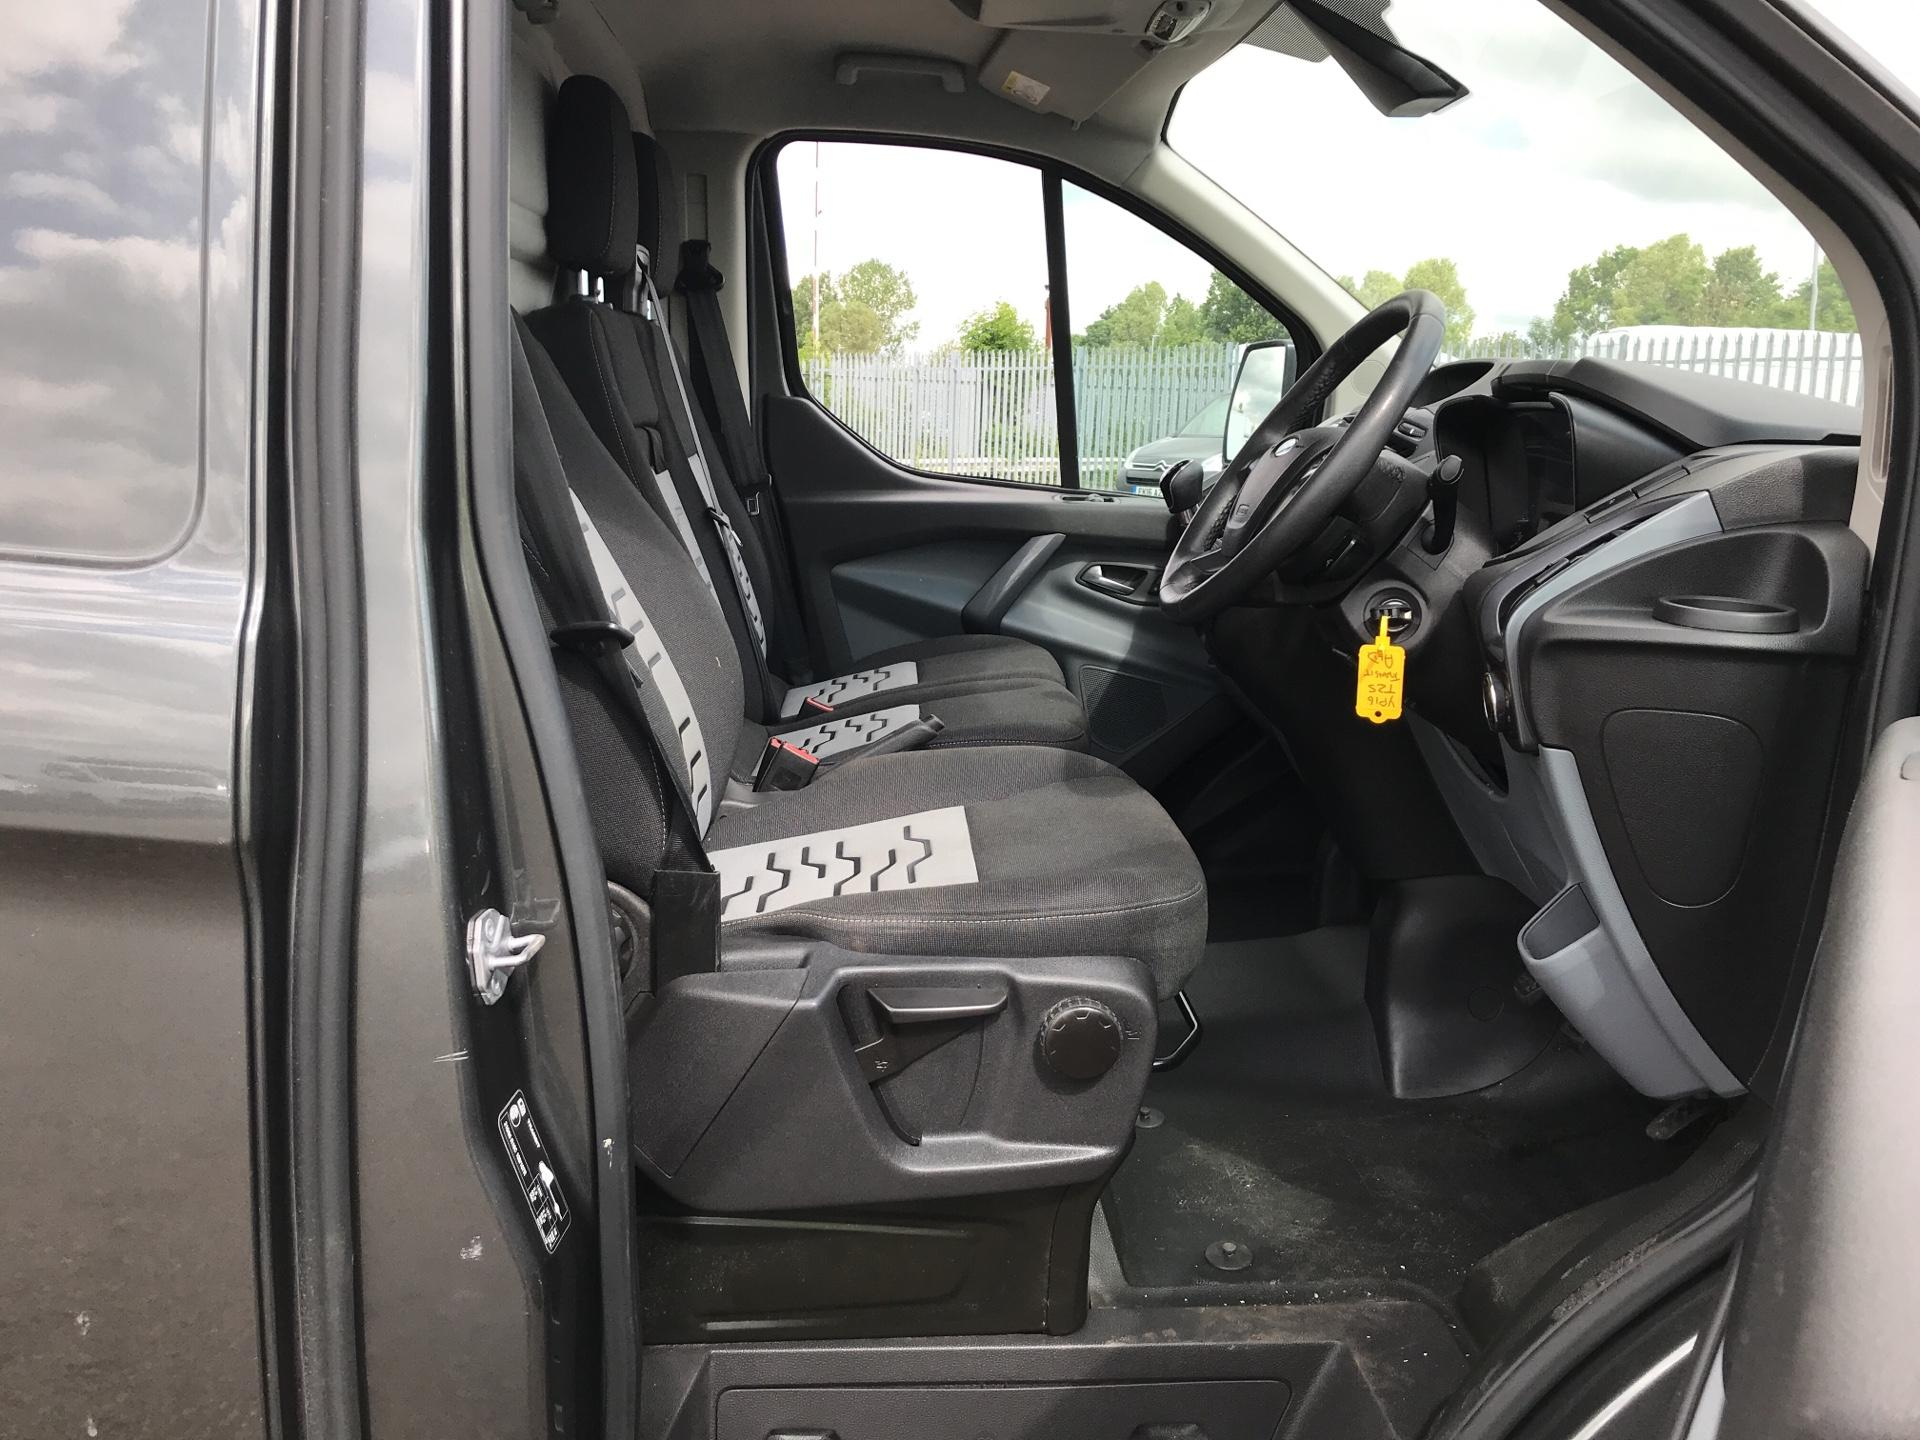 2016 Ford Transit Custom 290 L1 DIESEL FWD 2.2 TDCI 125PS LOW ROOF LIMITED VAN EURO 5 (YP16TZS) Image 9